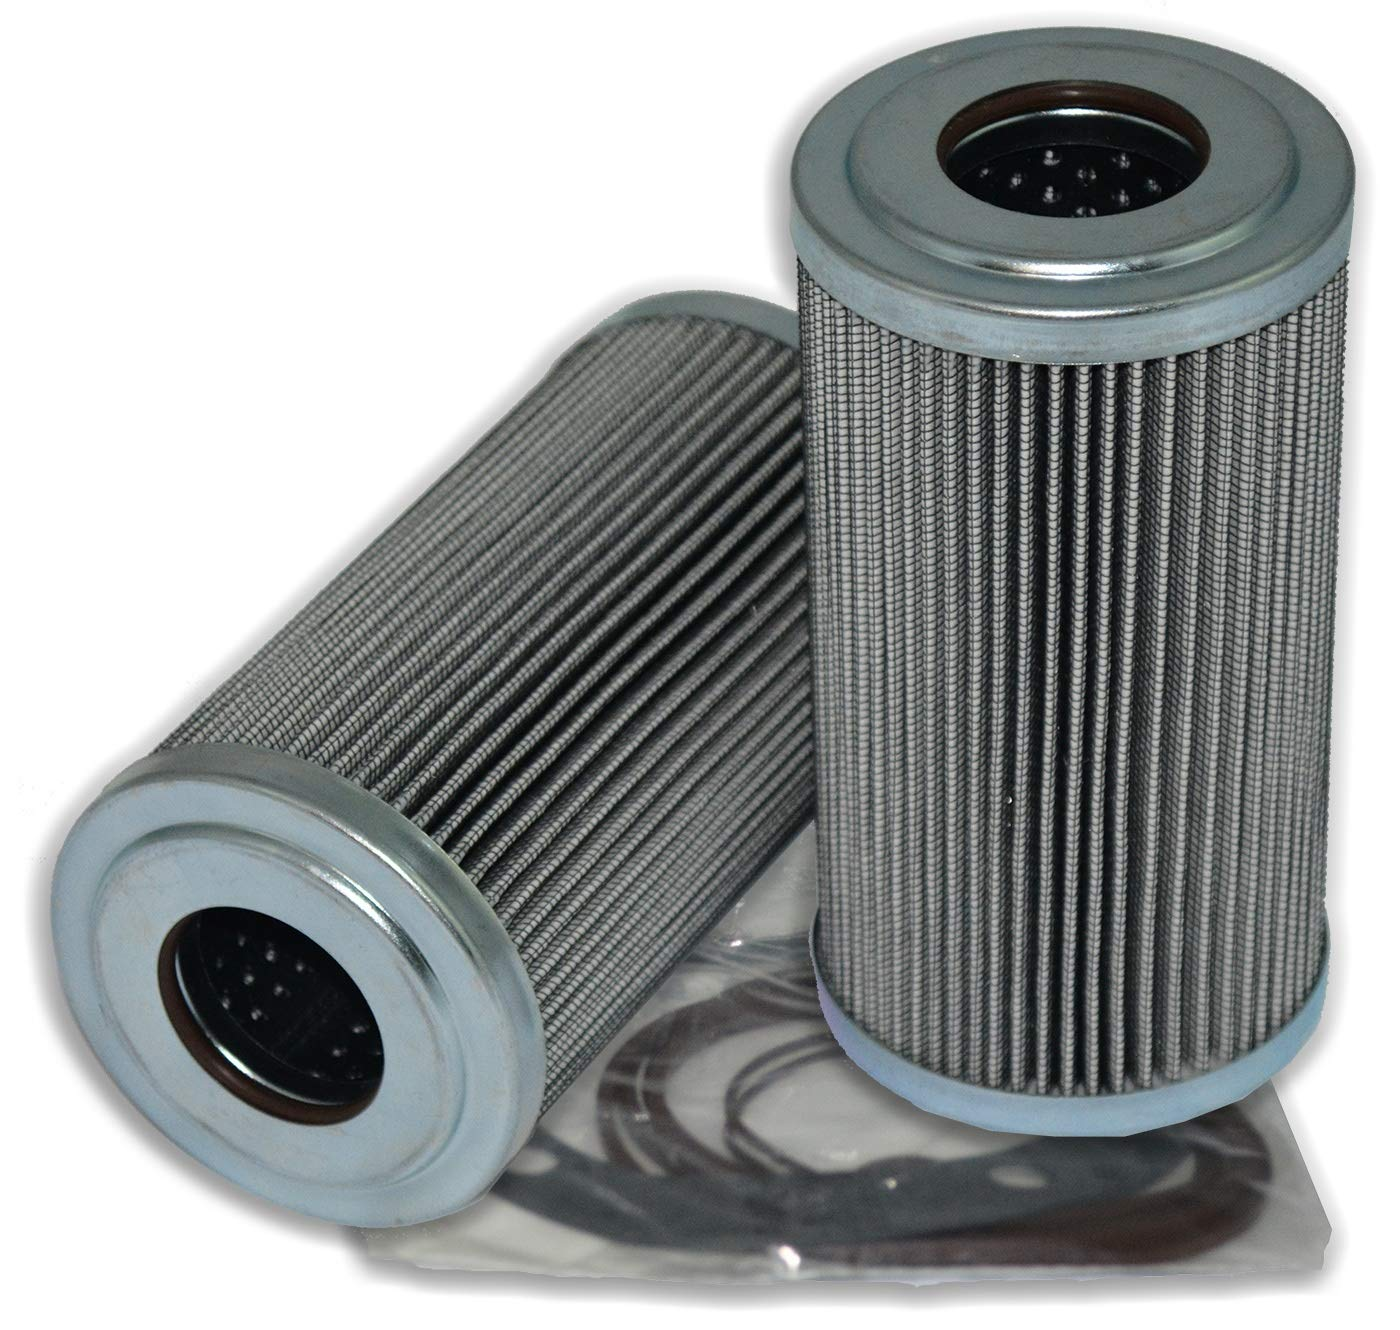 Allison 29506337 High Capacity 6 Inch Replacement Transmission Filter Kit from Big Filter Includes Gaskets and O-Rings for Allison 3000-4000 Transmissions